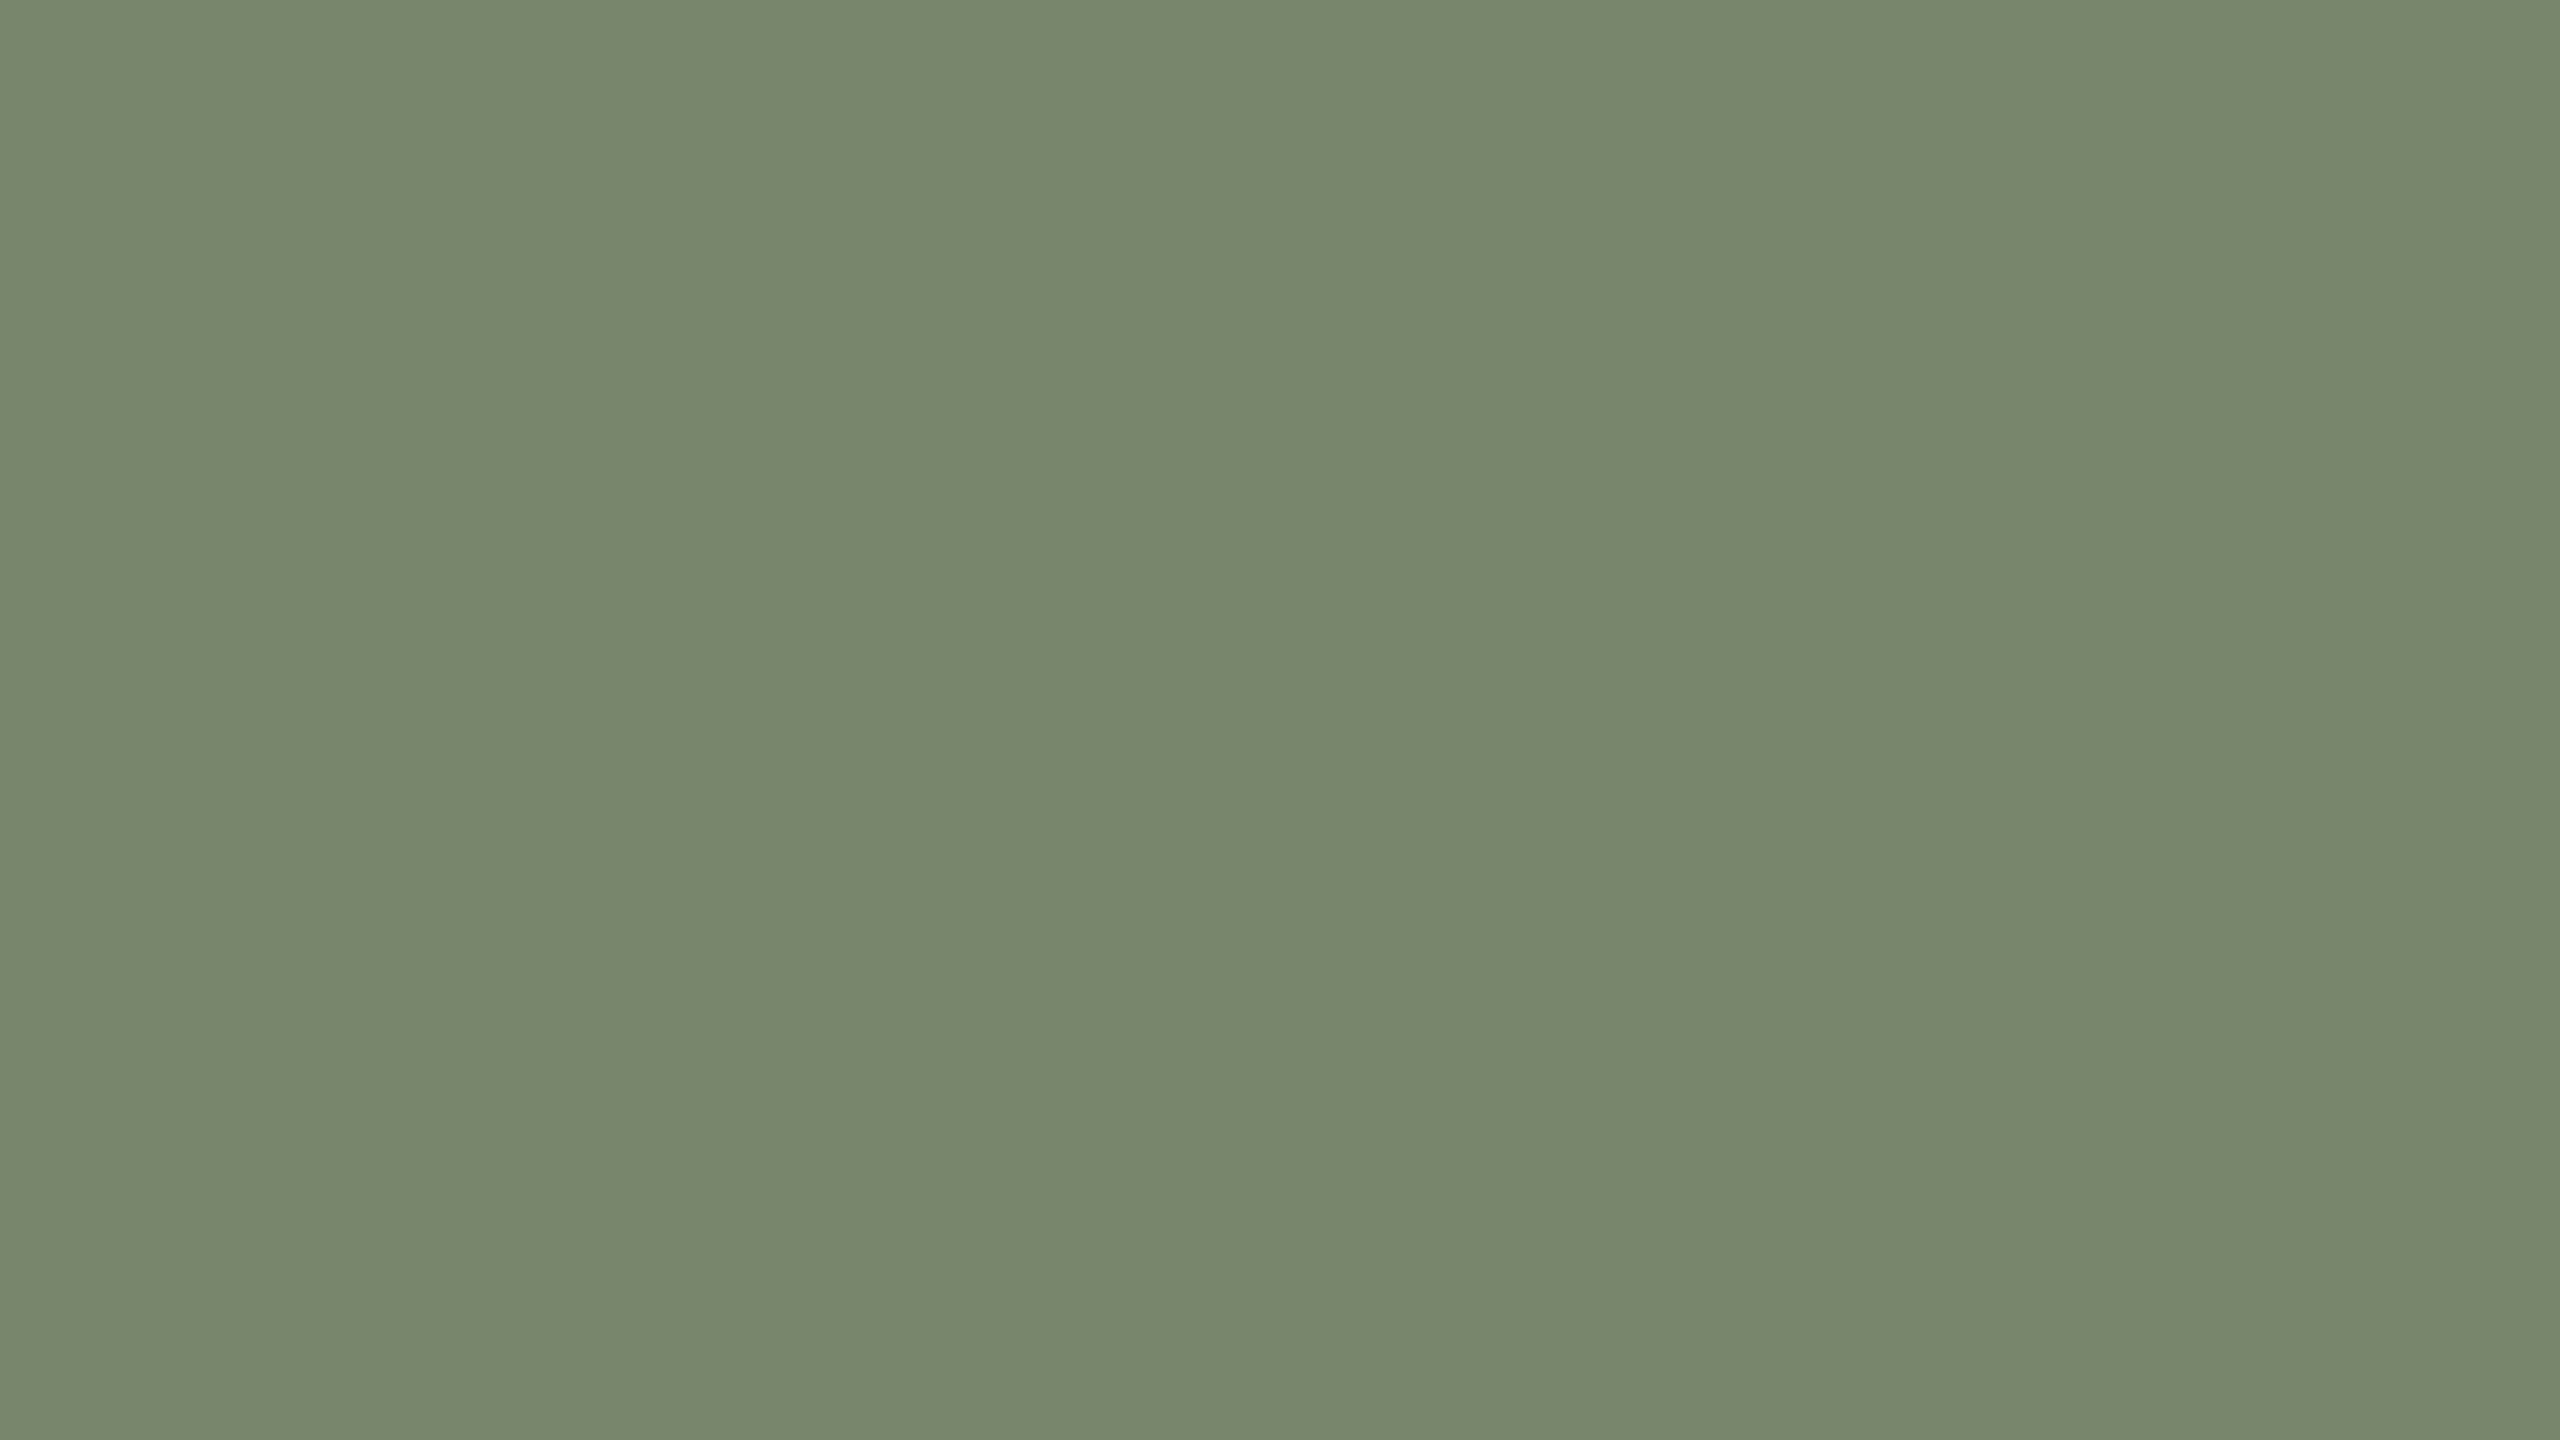 2560x1440 Camouflage Green Solid Color Background